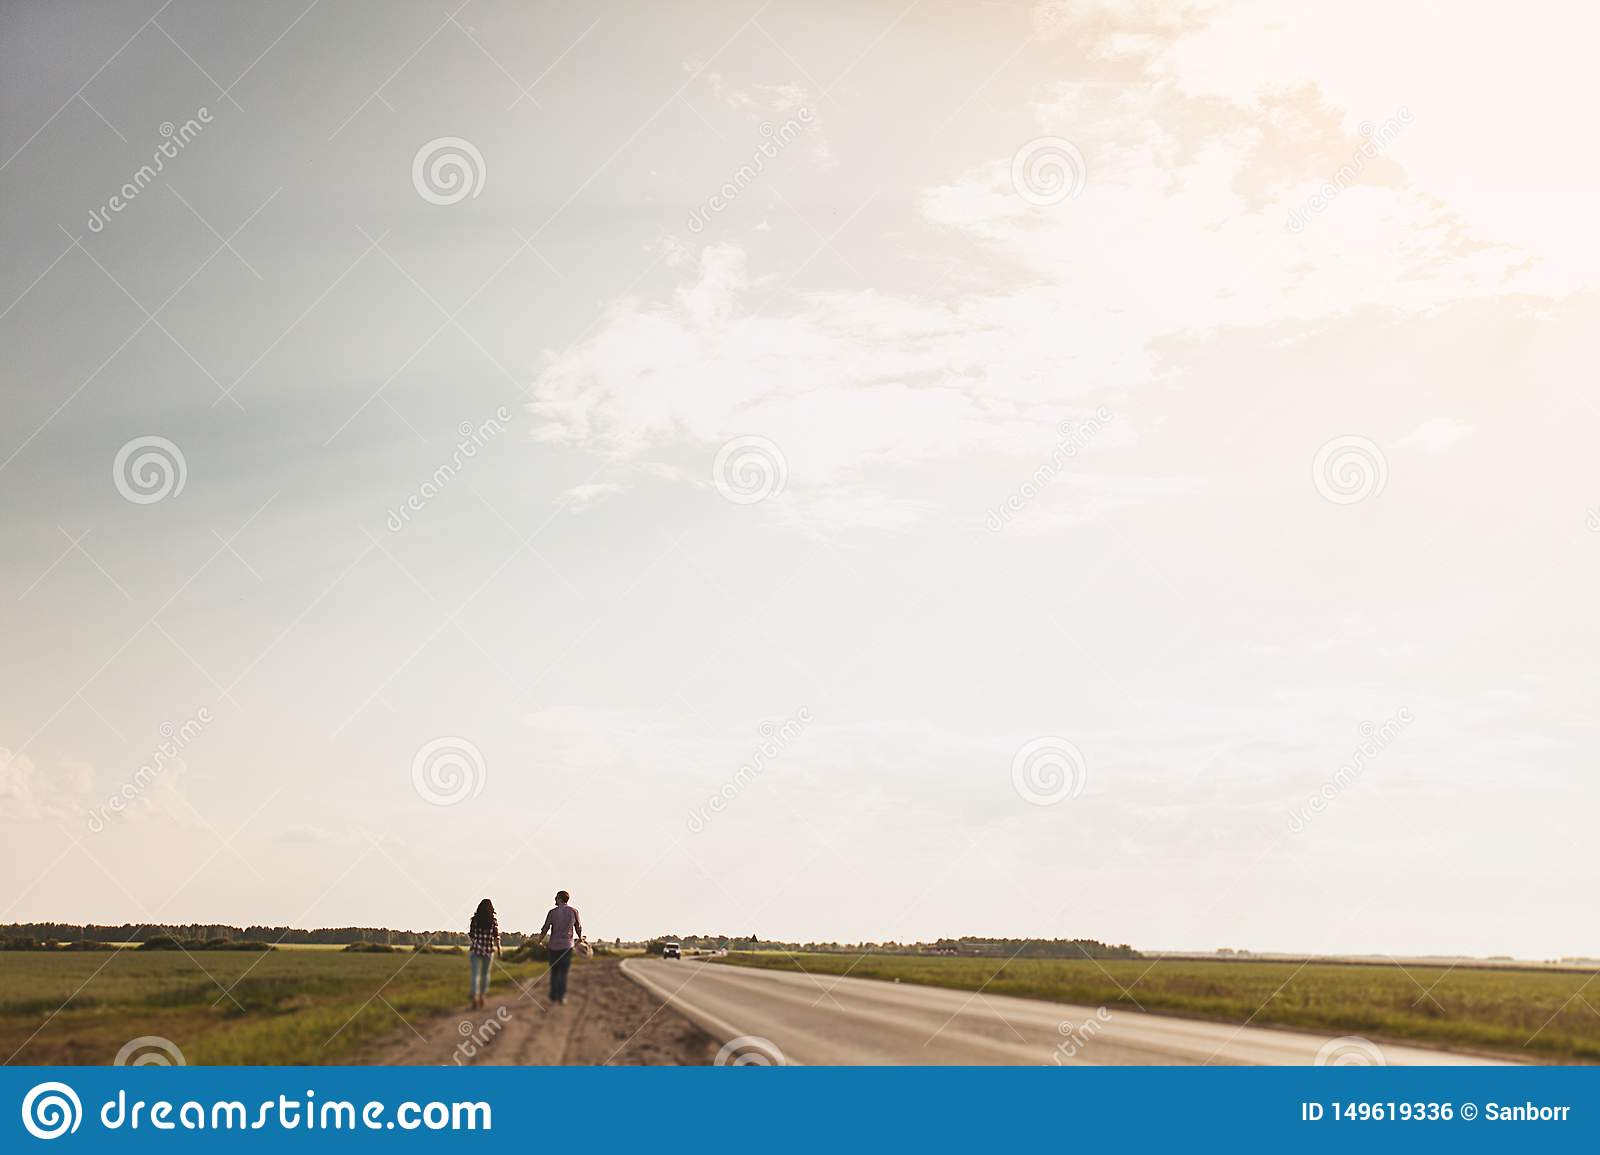 Couple in love is on a country road. The concept of hitchhiking. Rear view. Copy space for text